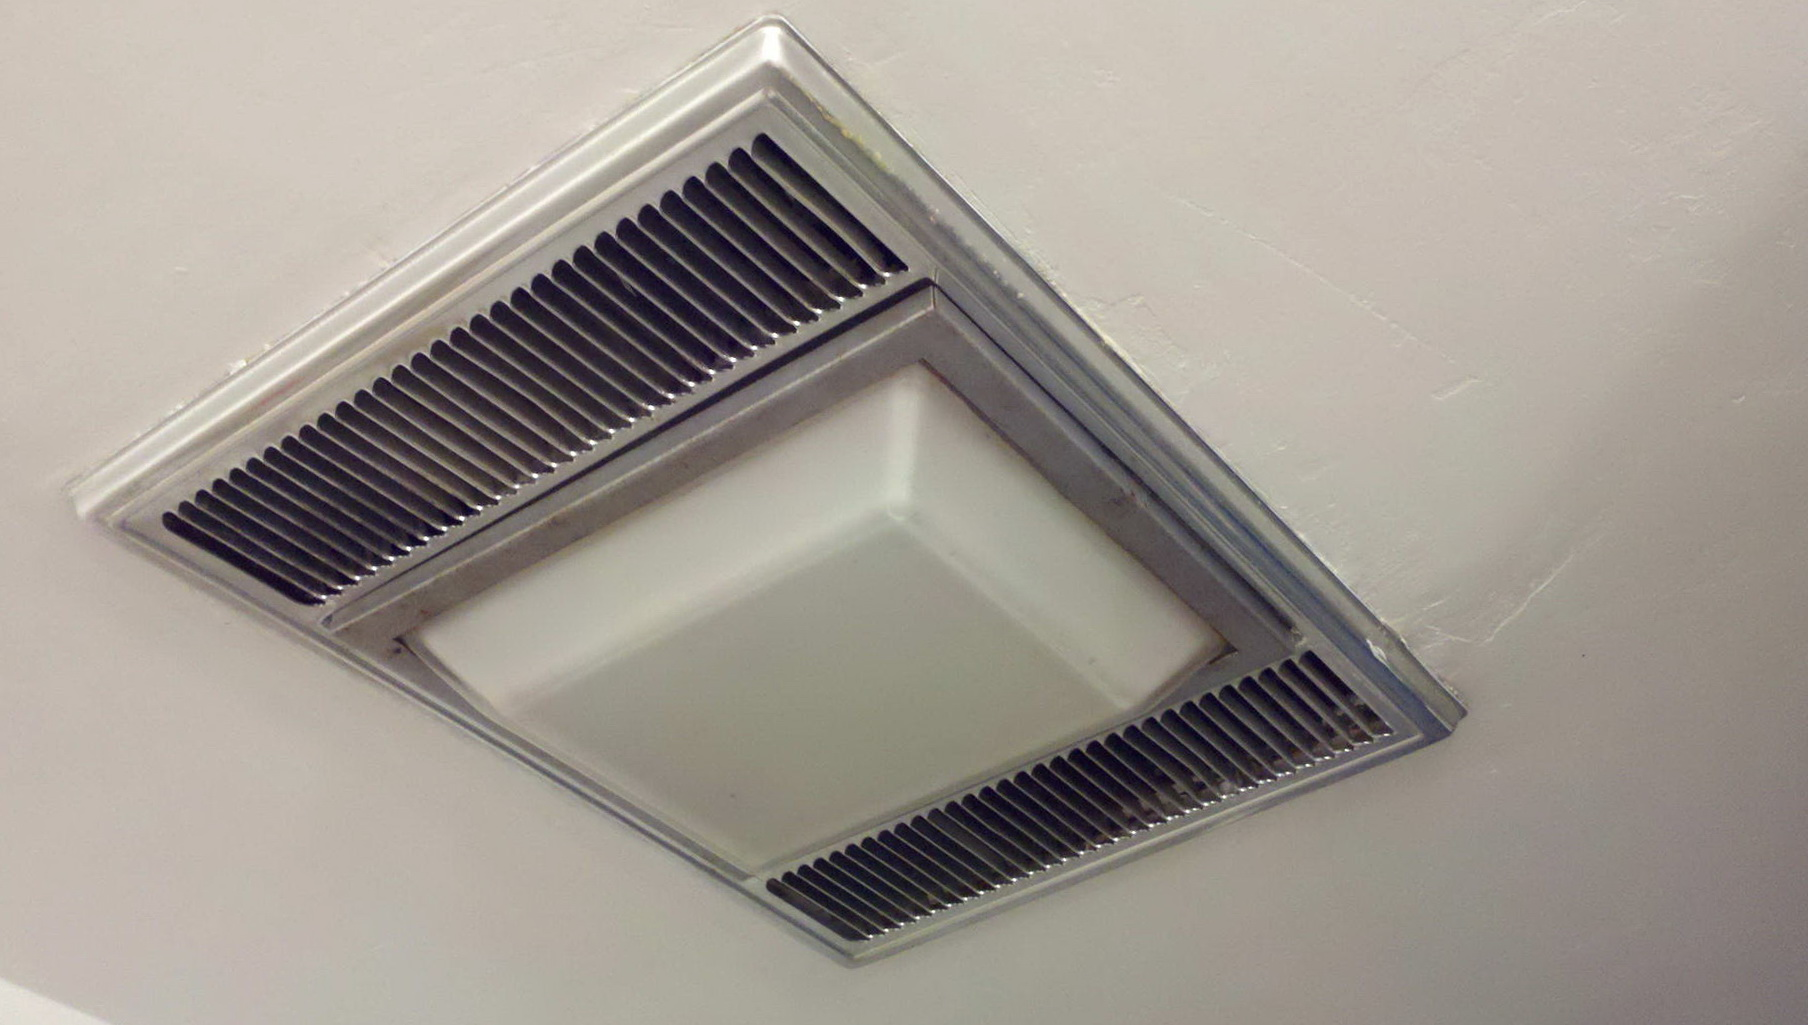 Broan Bathroom Fans Change Light Bulb